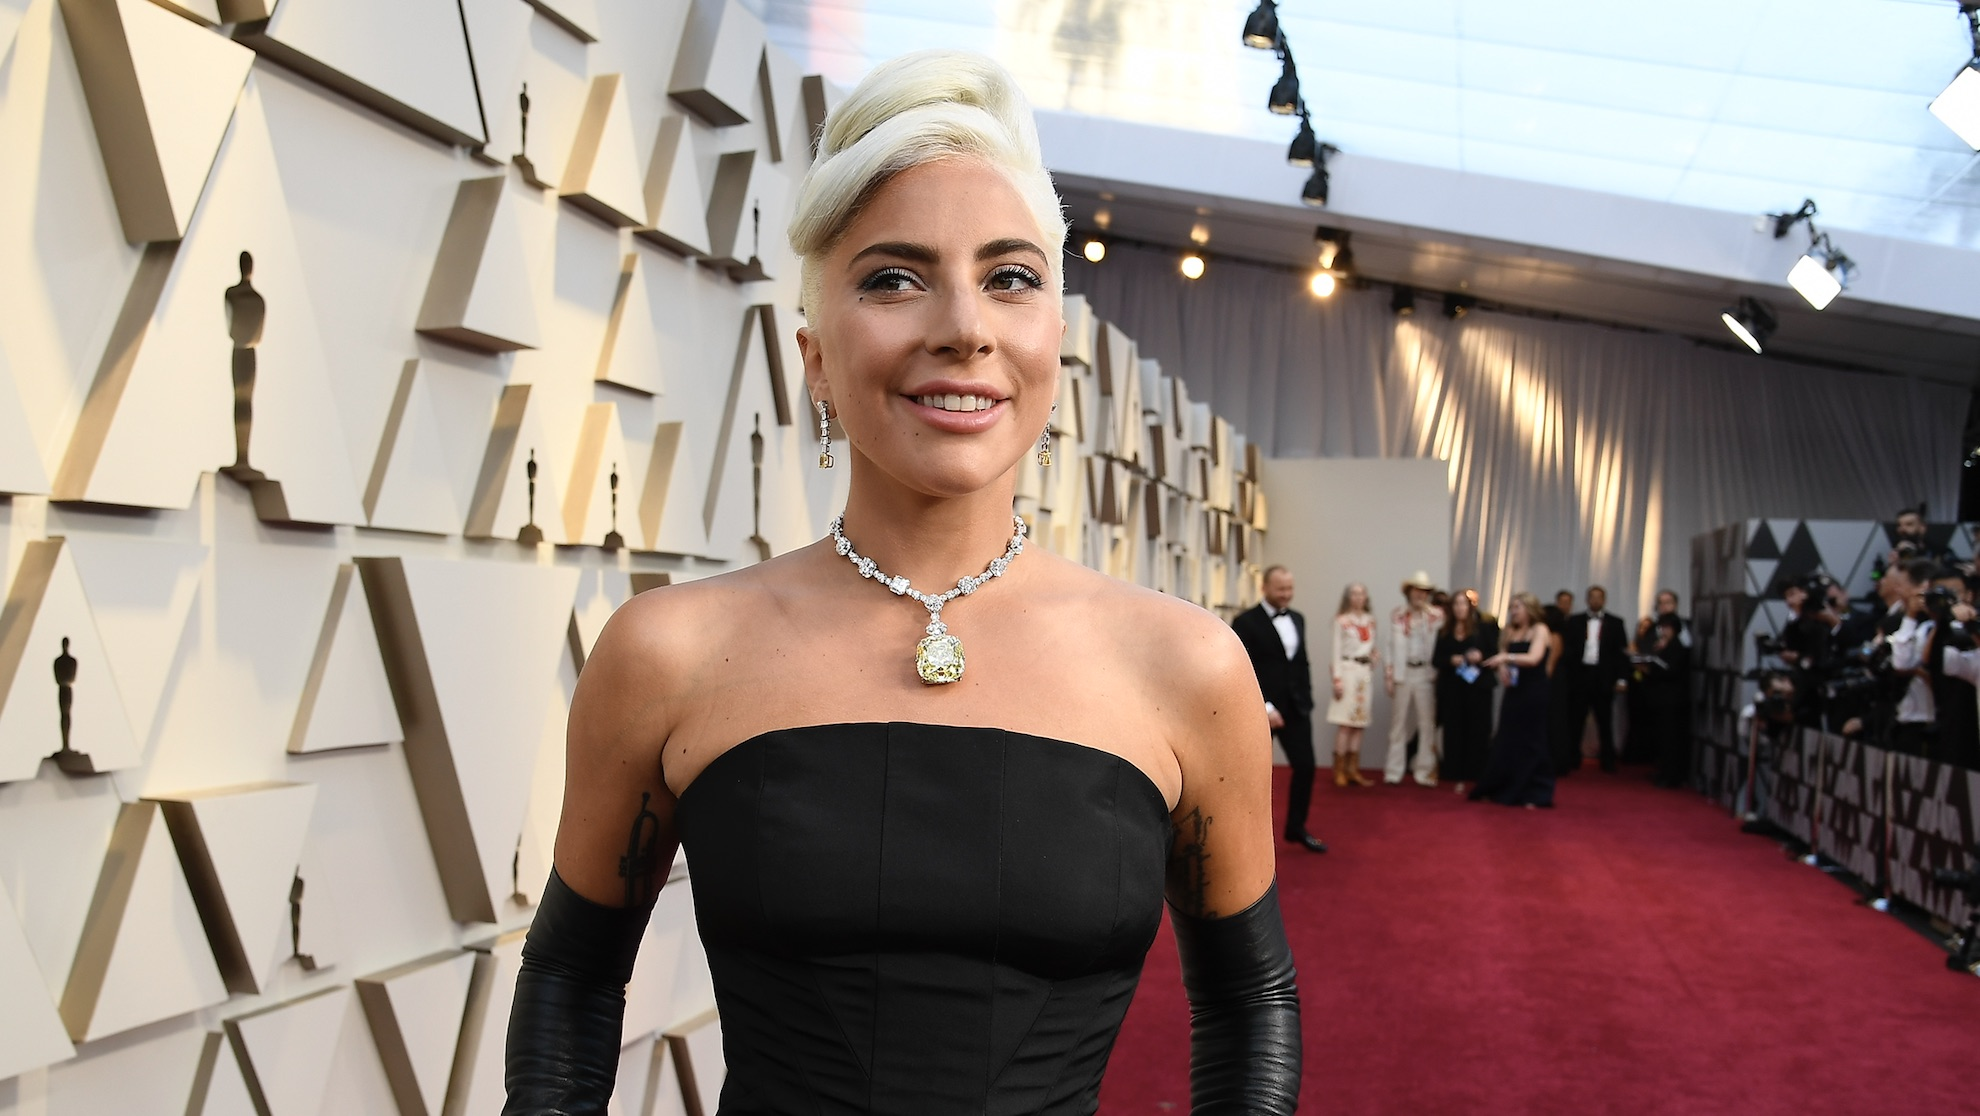 All the hidden fashion details you probably missed at the 2019 Oscars